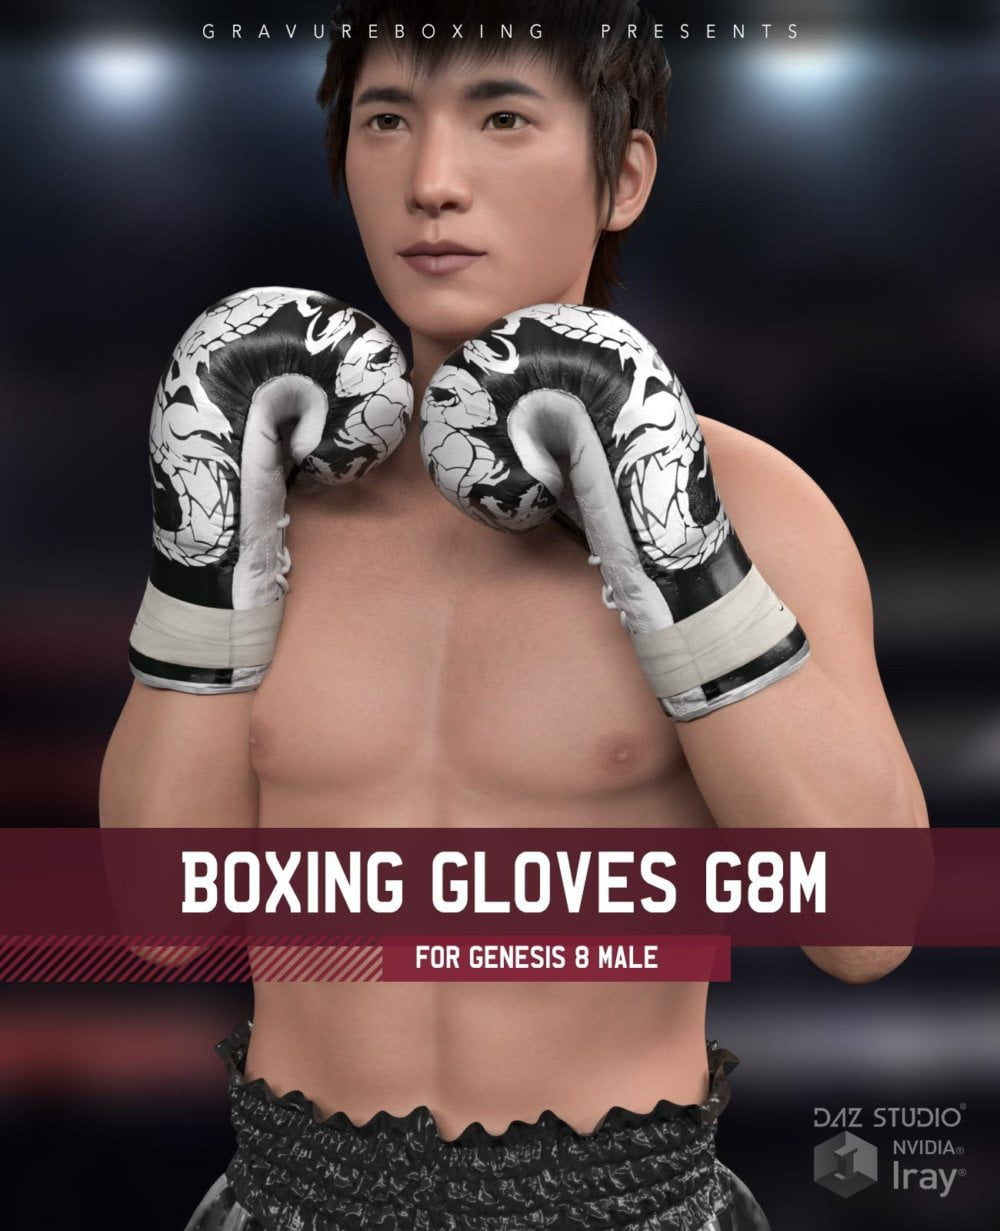 Boxing Gloves G8M for Genesis 8 Male